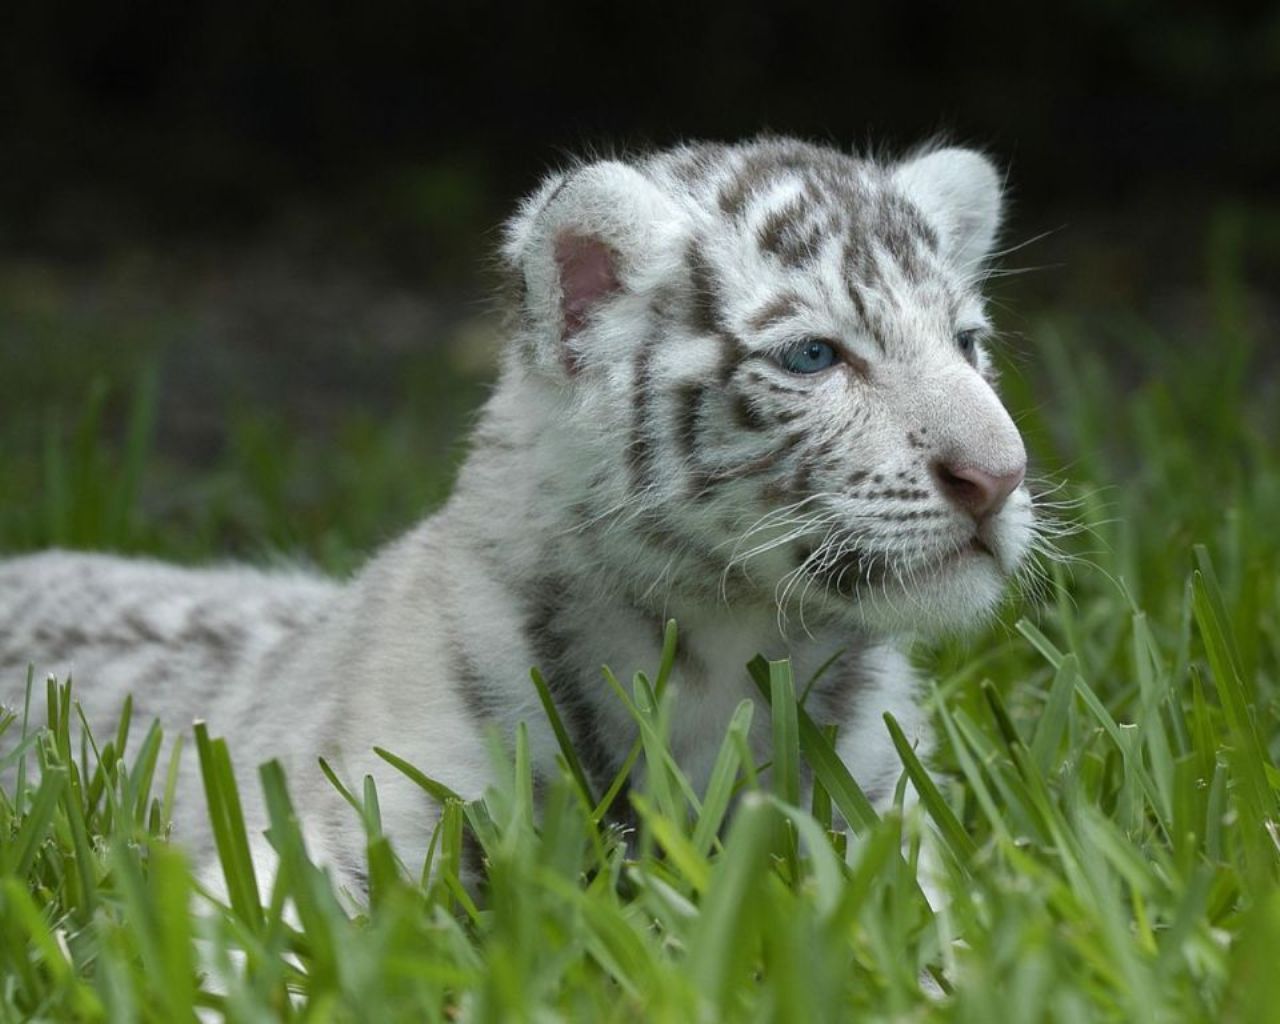 White Tigers Cubs Wallpaper White Tiger Cub Wallpapers 1280x1024